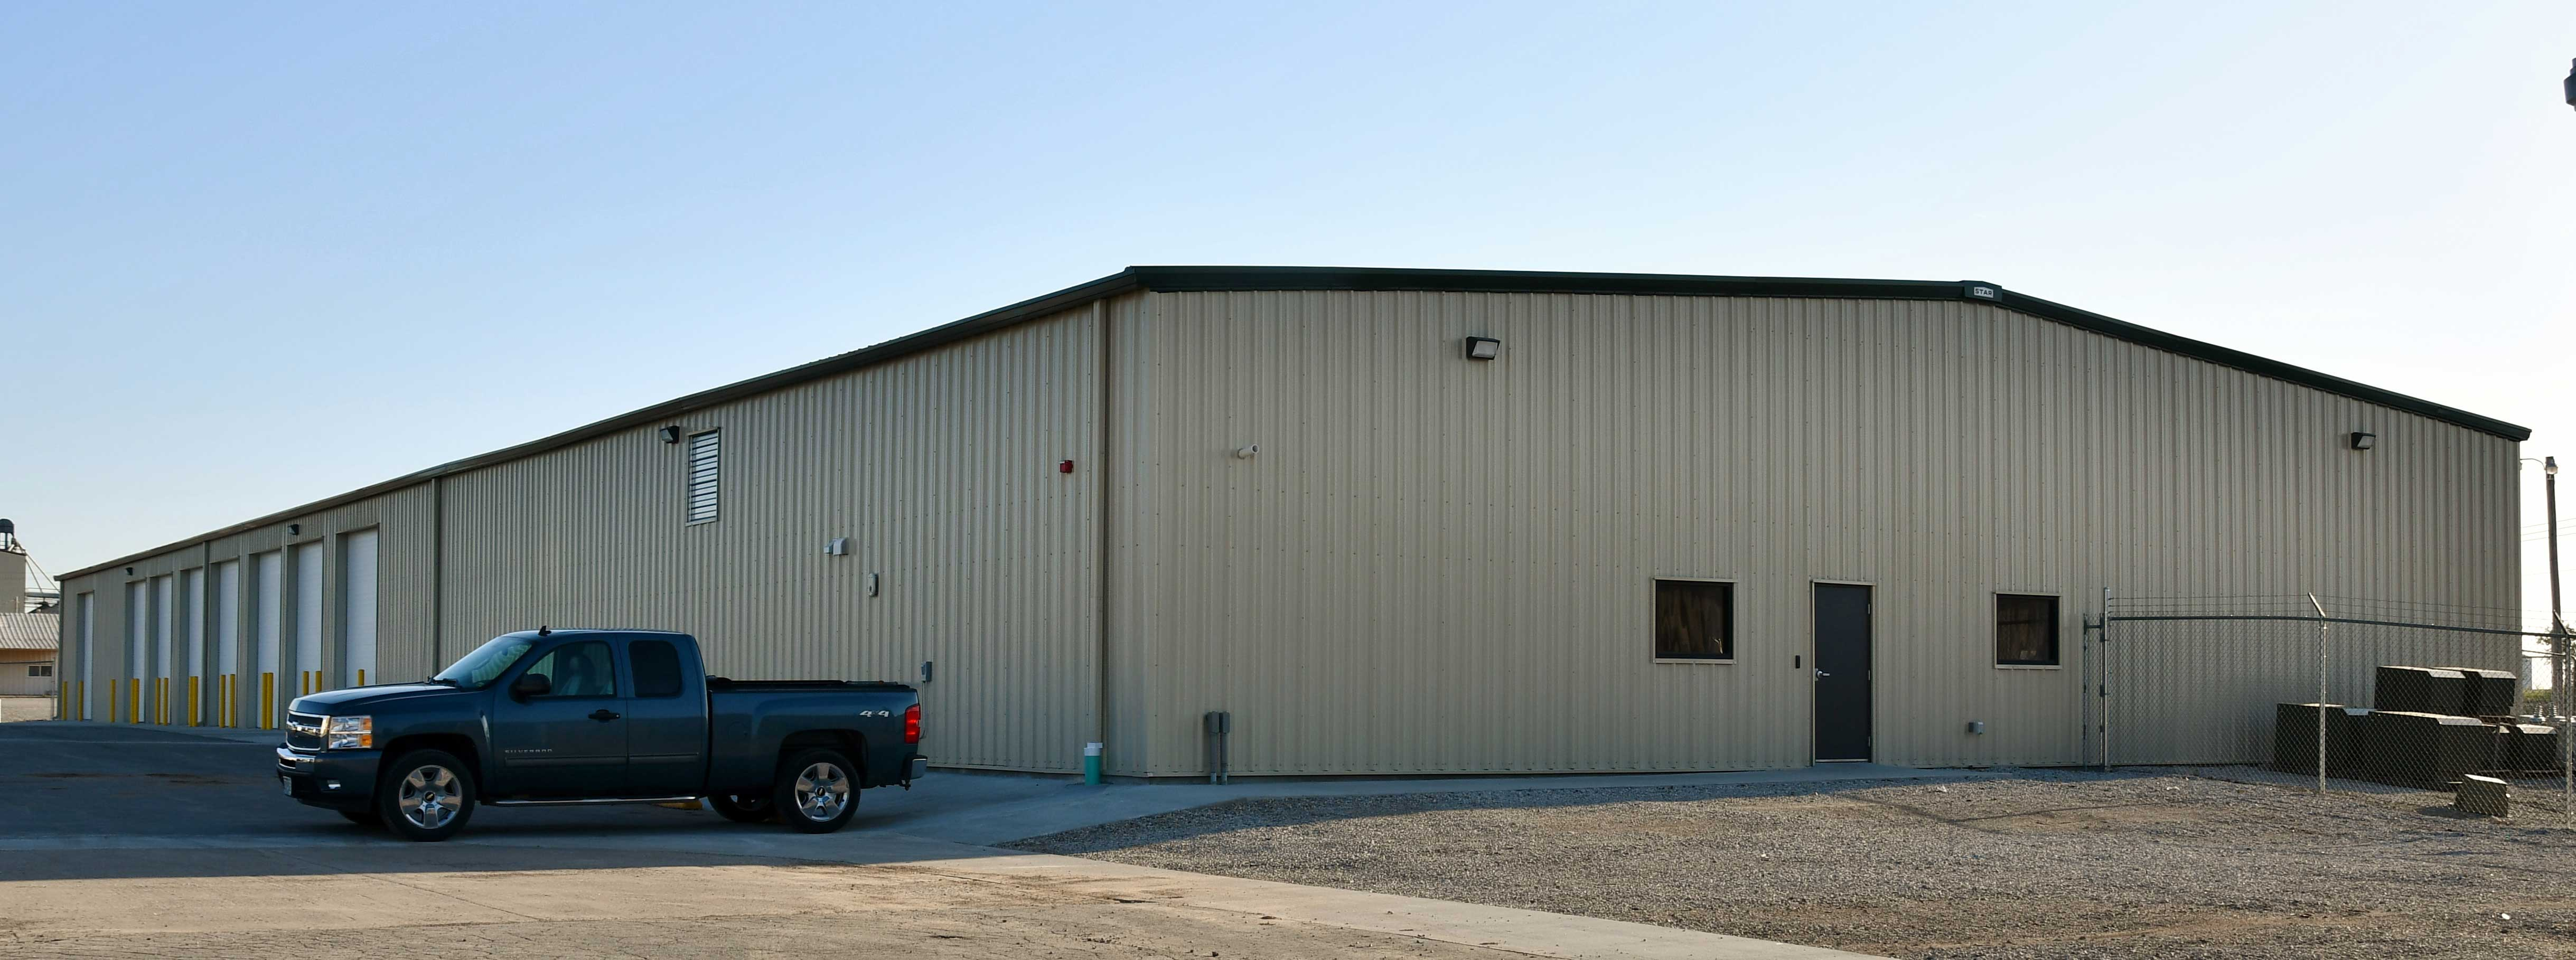 New warehouse in Chillicothe